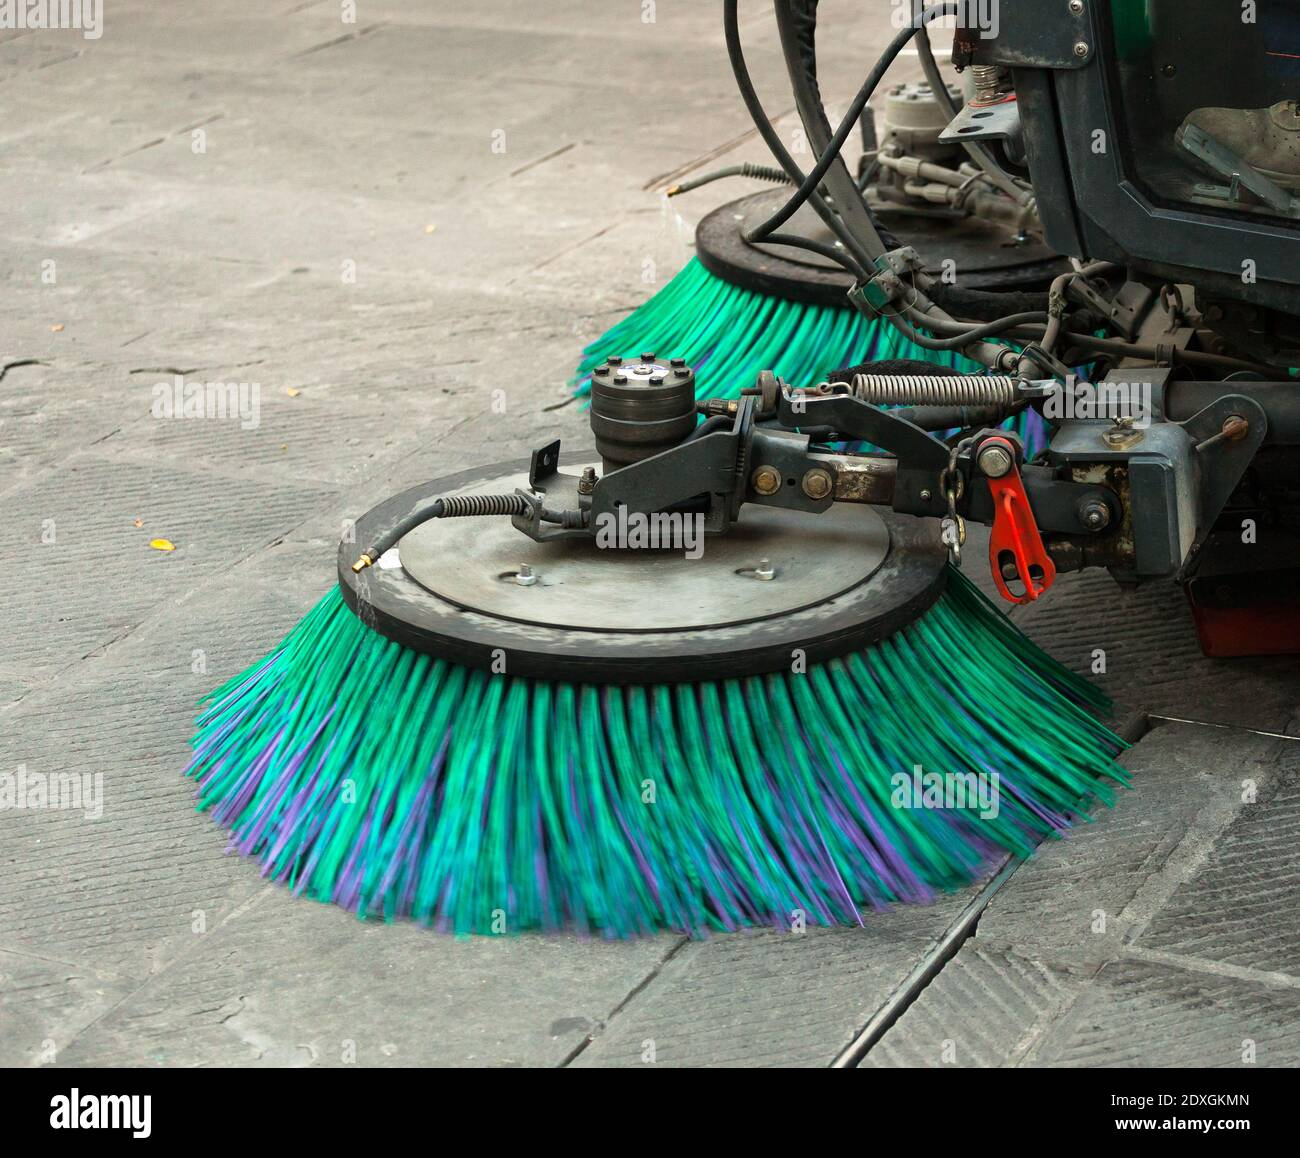 A street sweeper machine cleaning the streets. Stock Photo